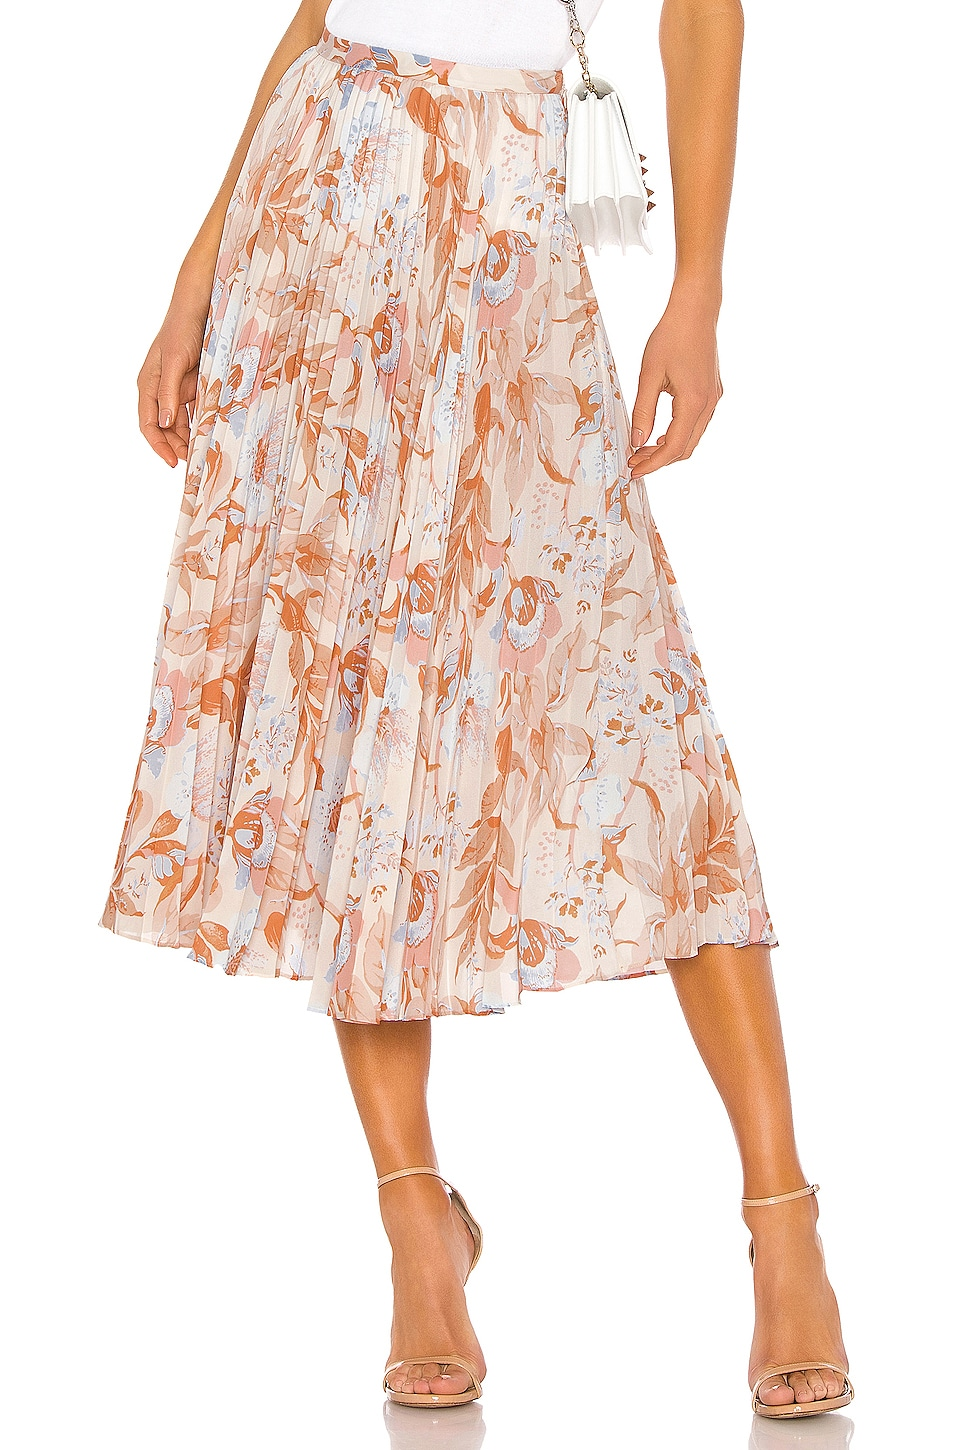 Vince Marine Garden Pleated Skirt in Tangerine